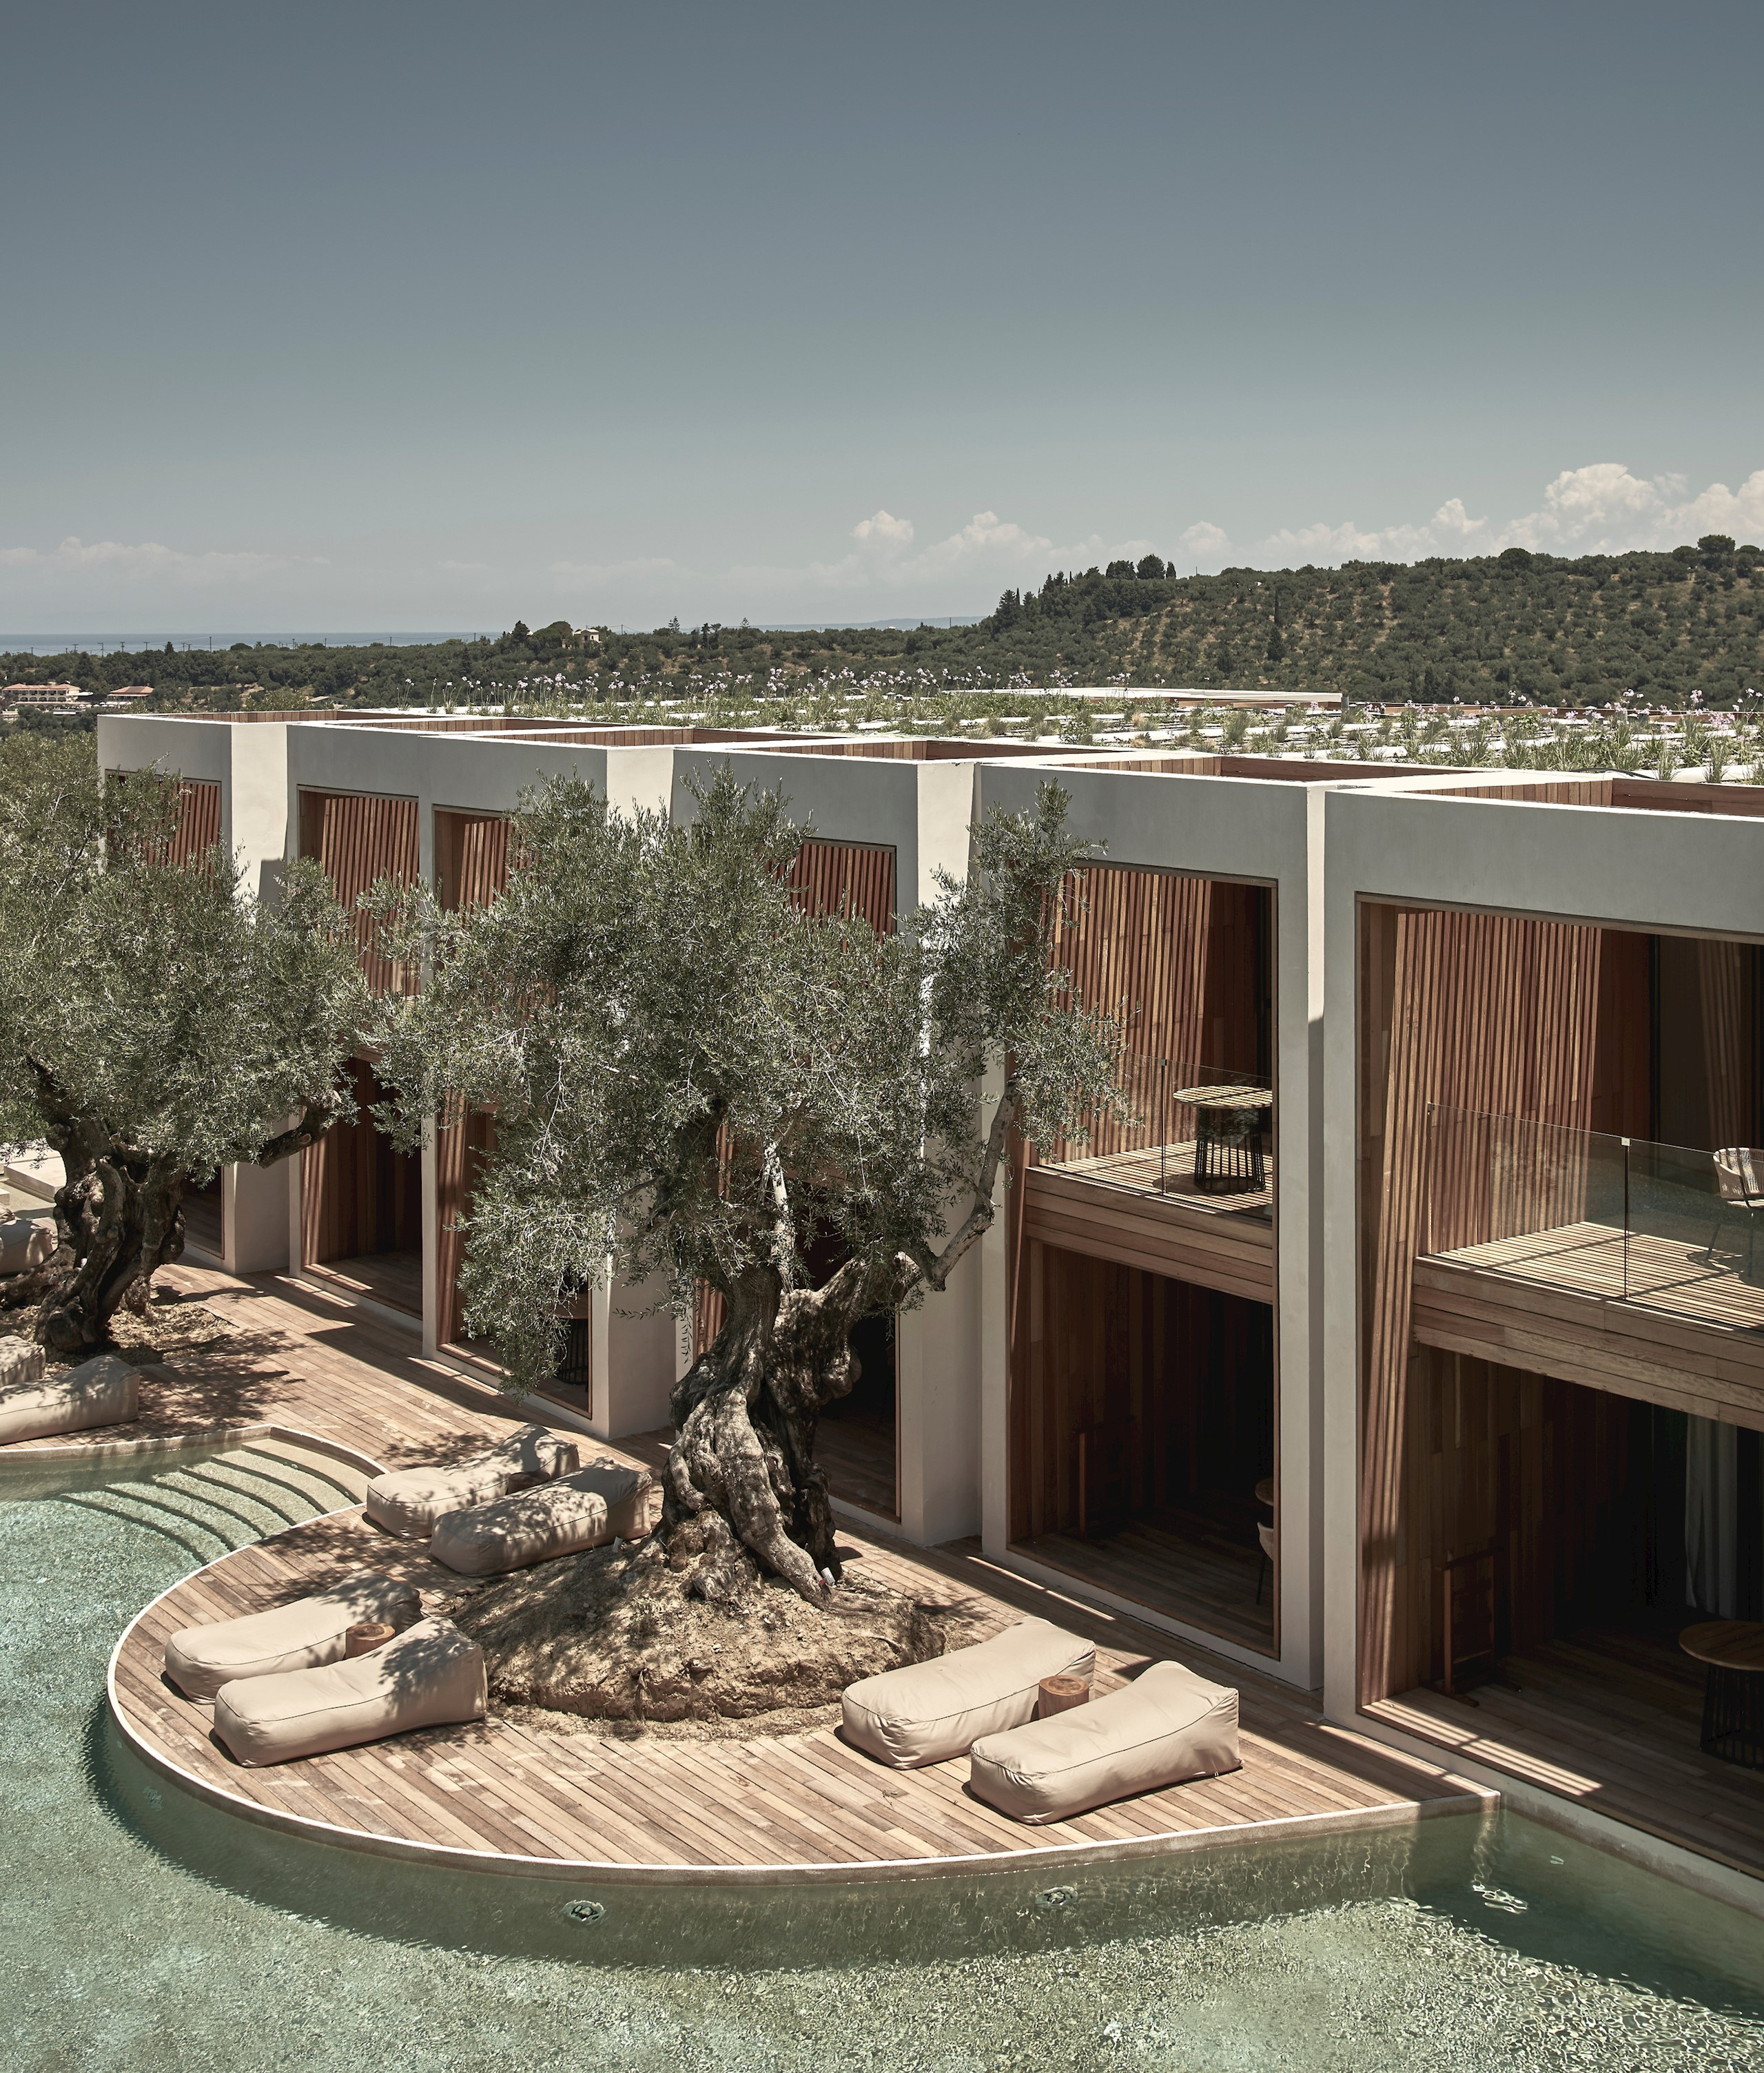 Olea All Suite Hotel Architecture